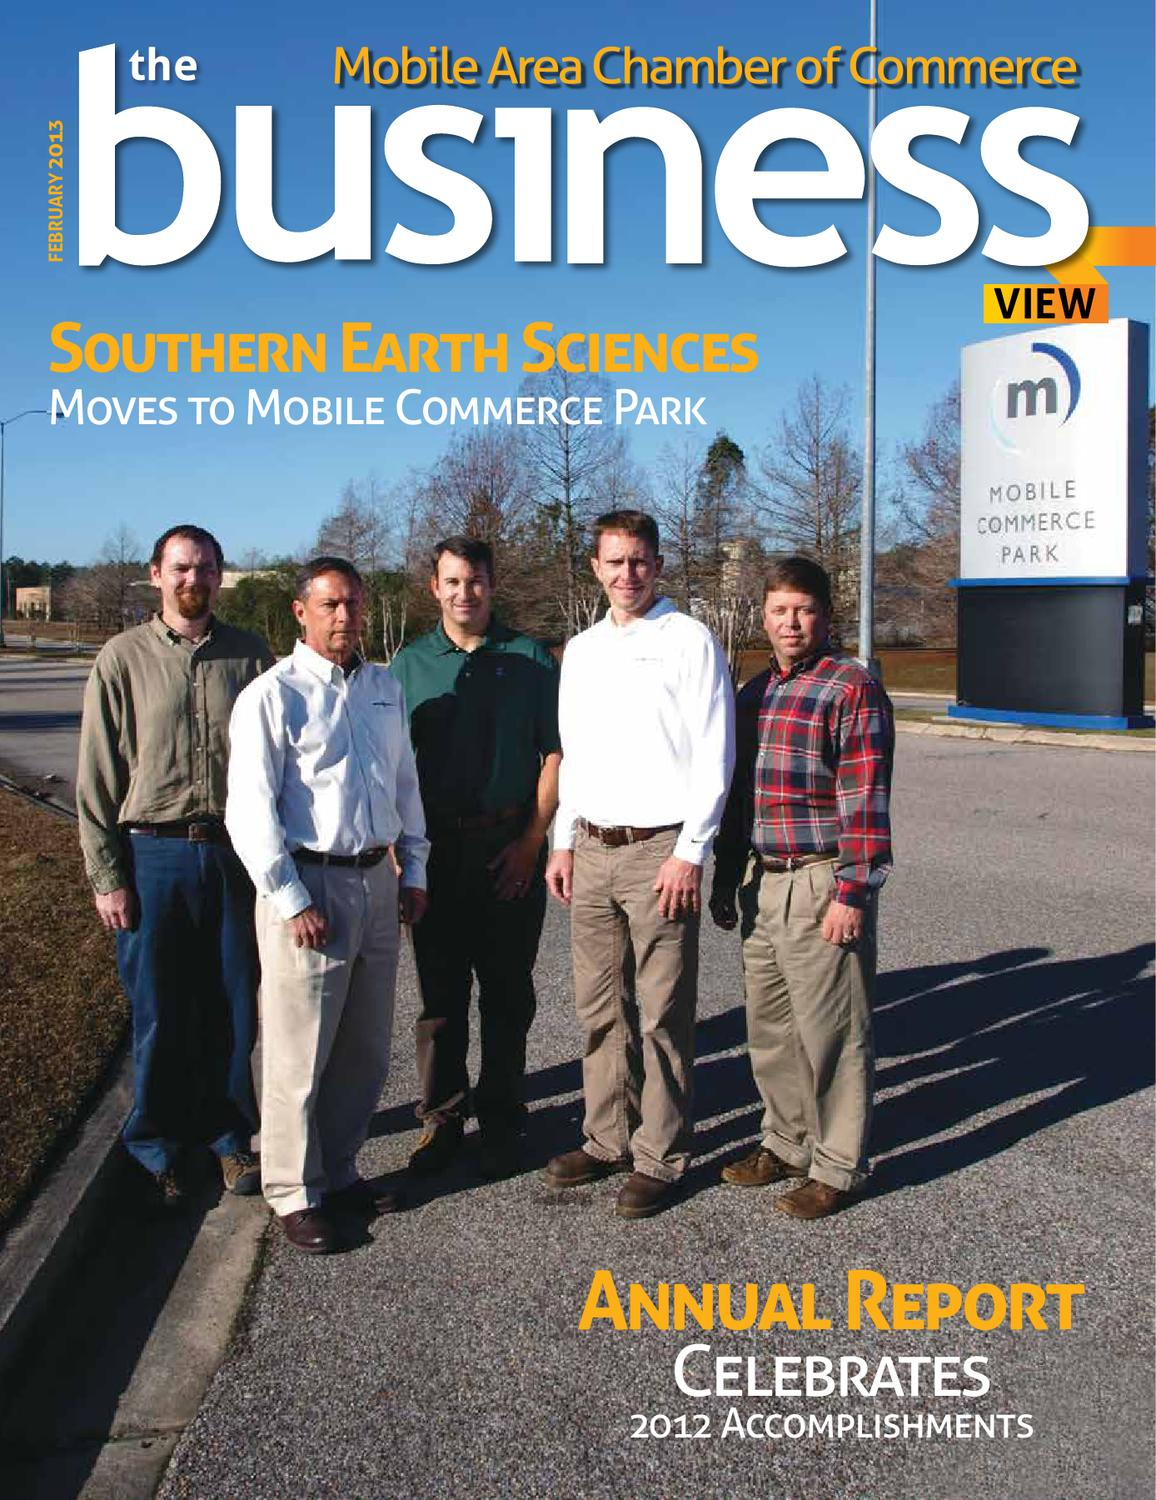 The Business View February 2013 By Mobile Area Chamber